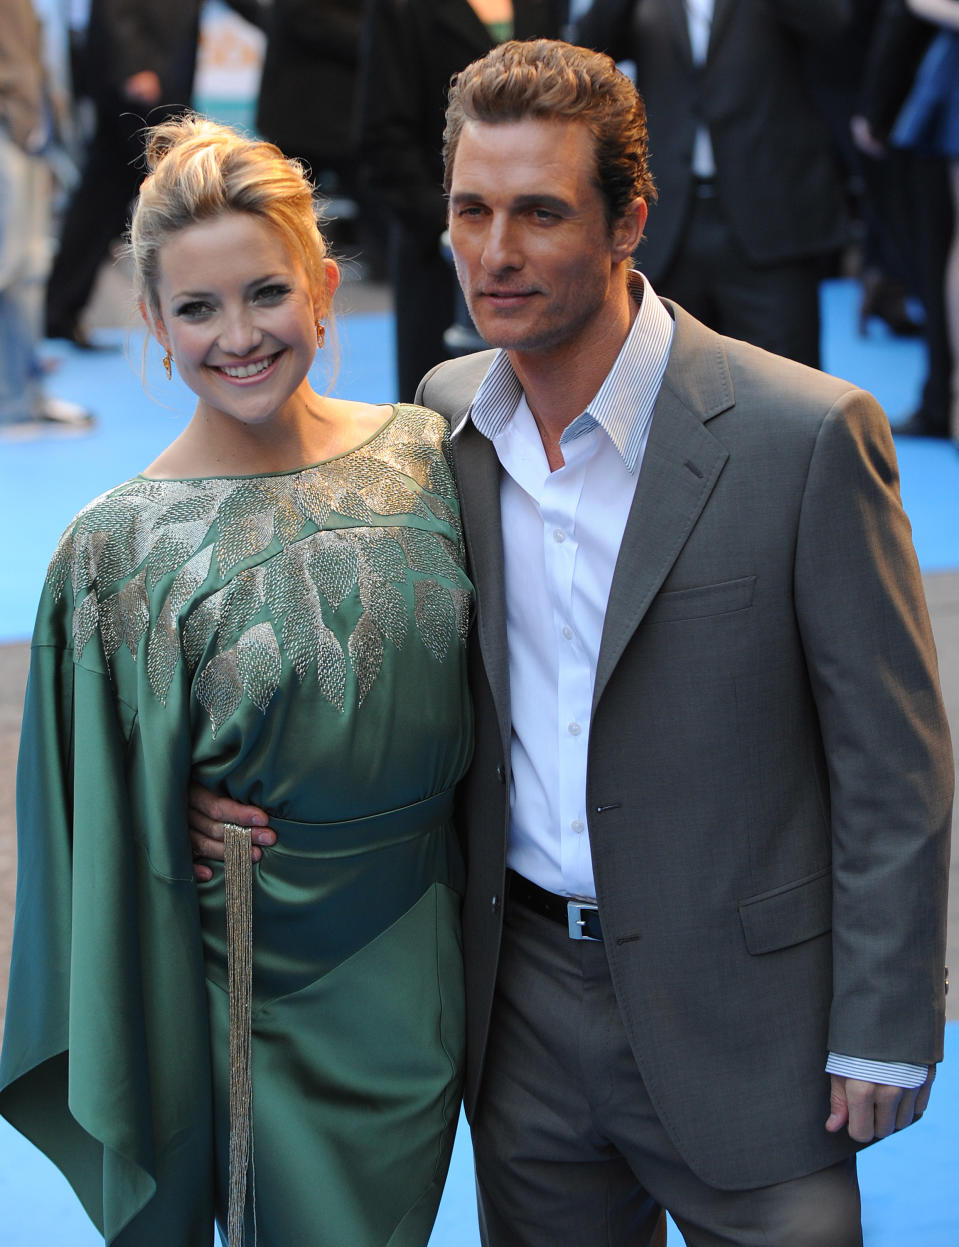 Kate Hudson and Matthew McConaughey at London's Fool's Gold premiere in 2008.